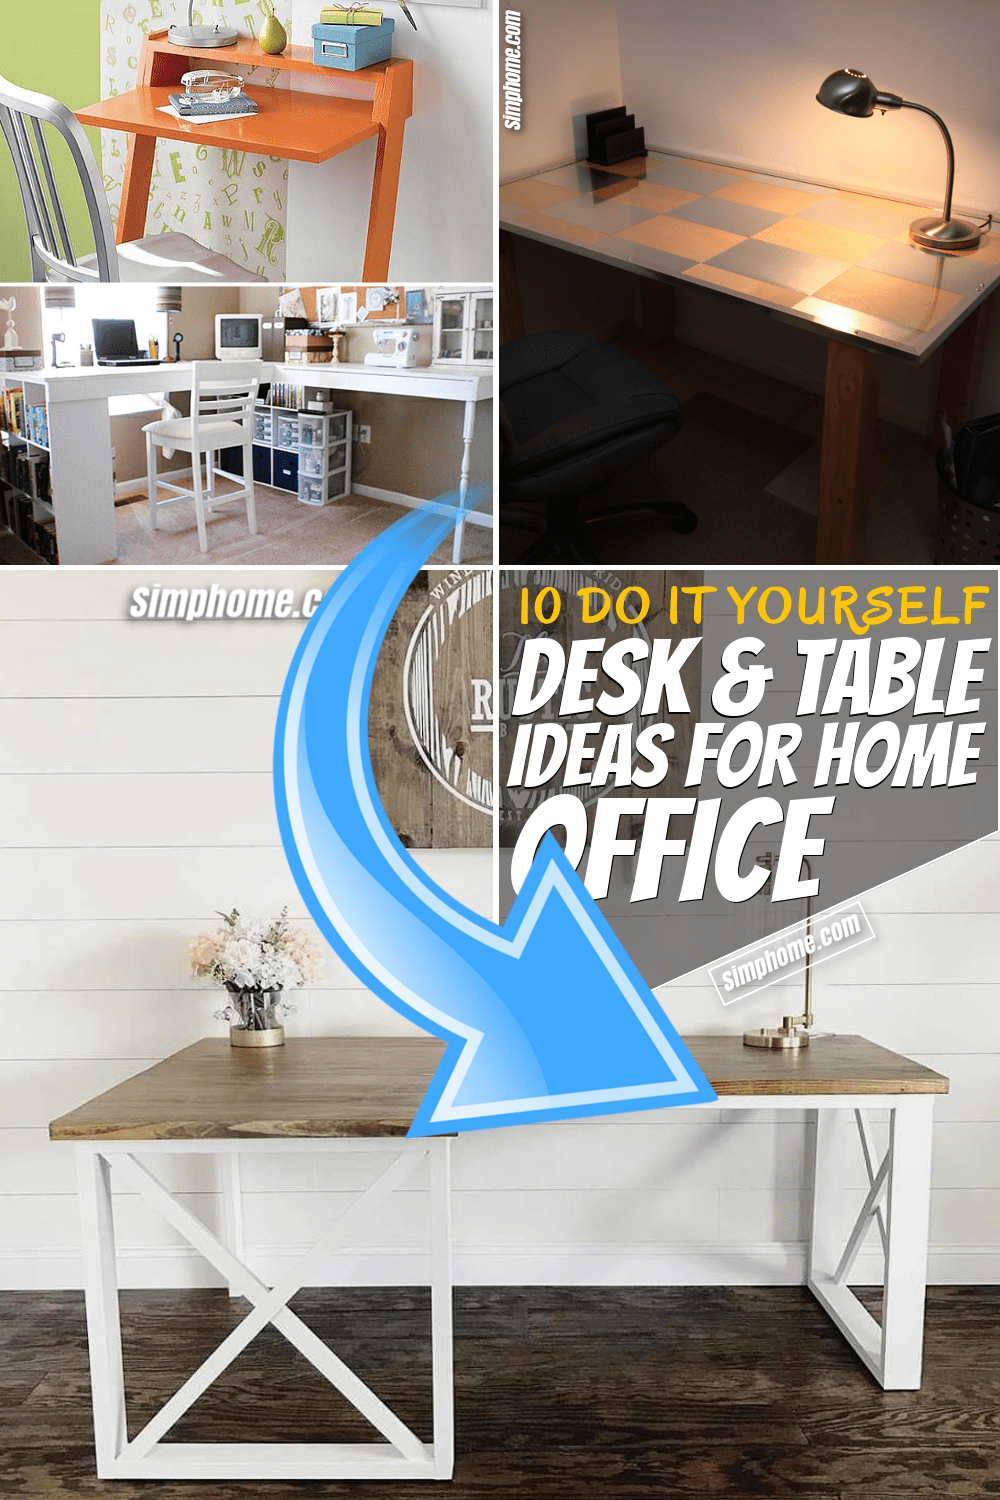 SIMPHOME.COM 10 DIY Desk and Table Ideas for a Home Office Pinterest Featured Image